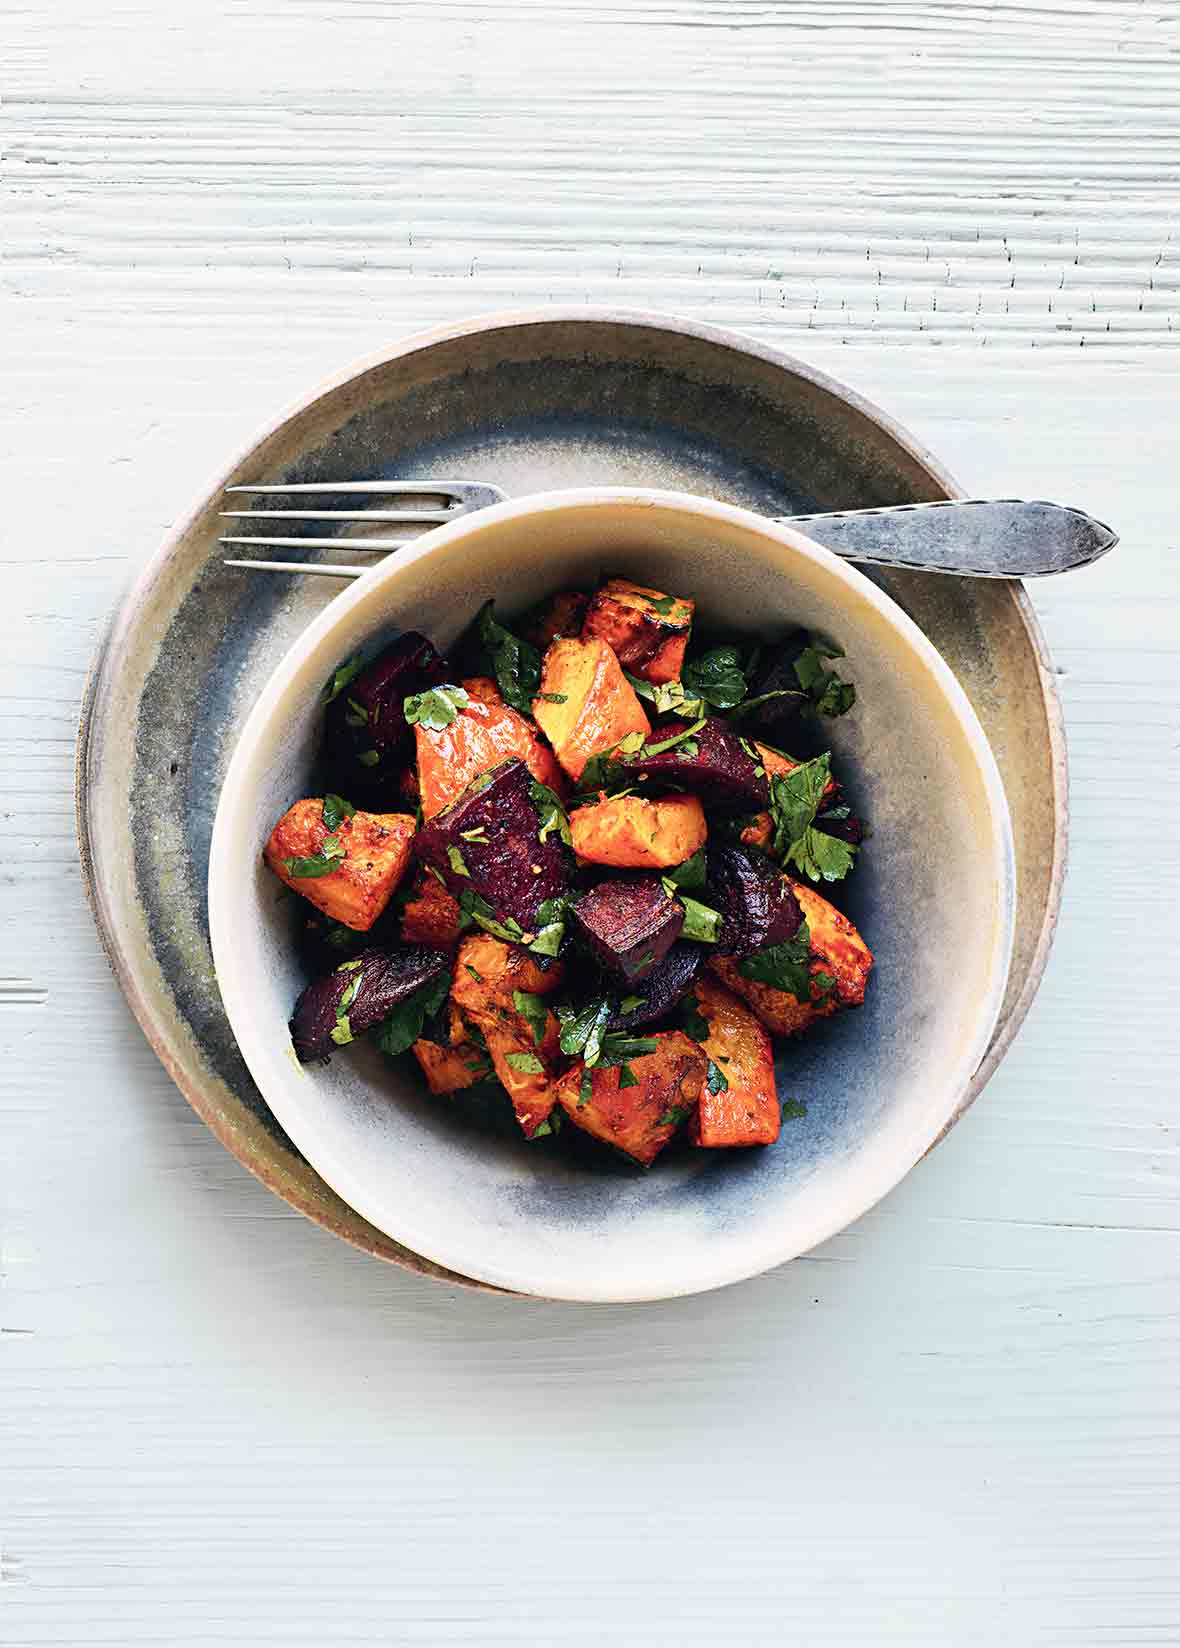 An earthenware bowl filled with curried butternut squash and beets, on a plate with a fork resting beside the bowl